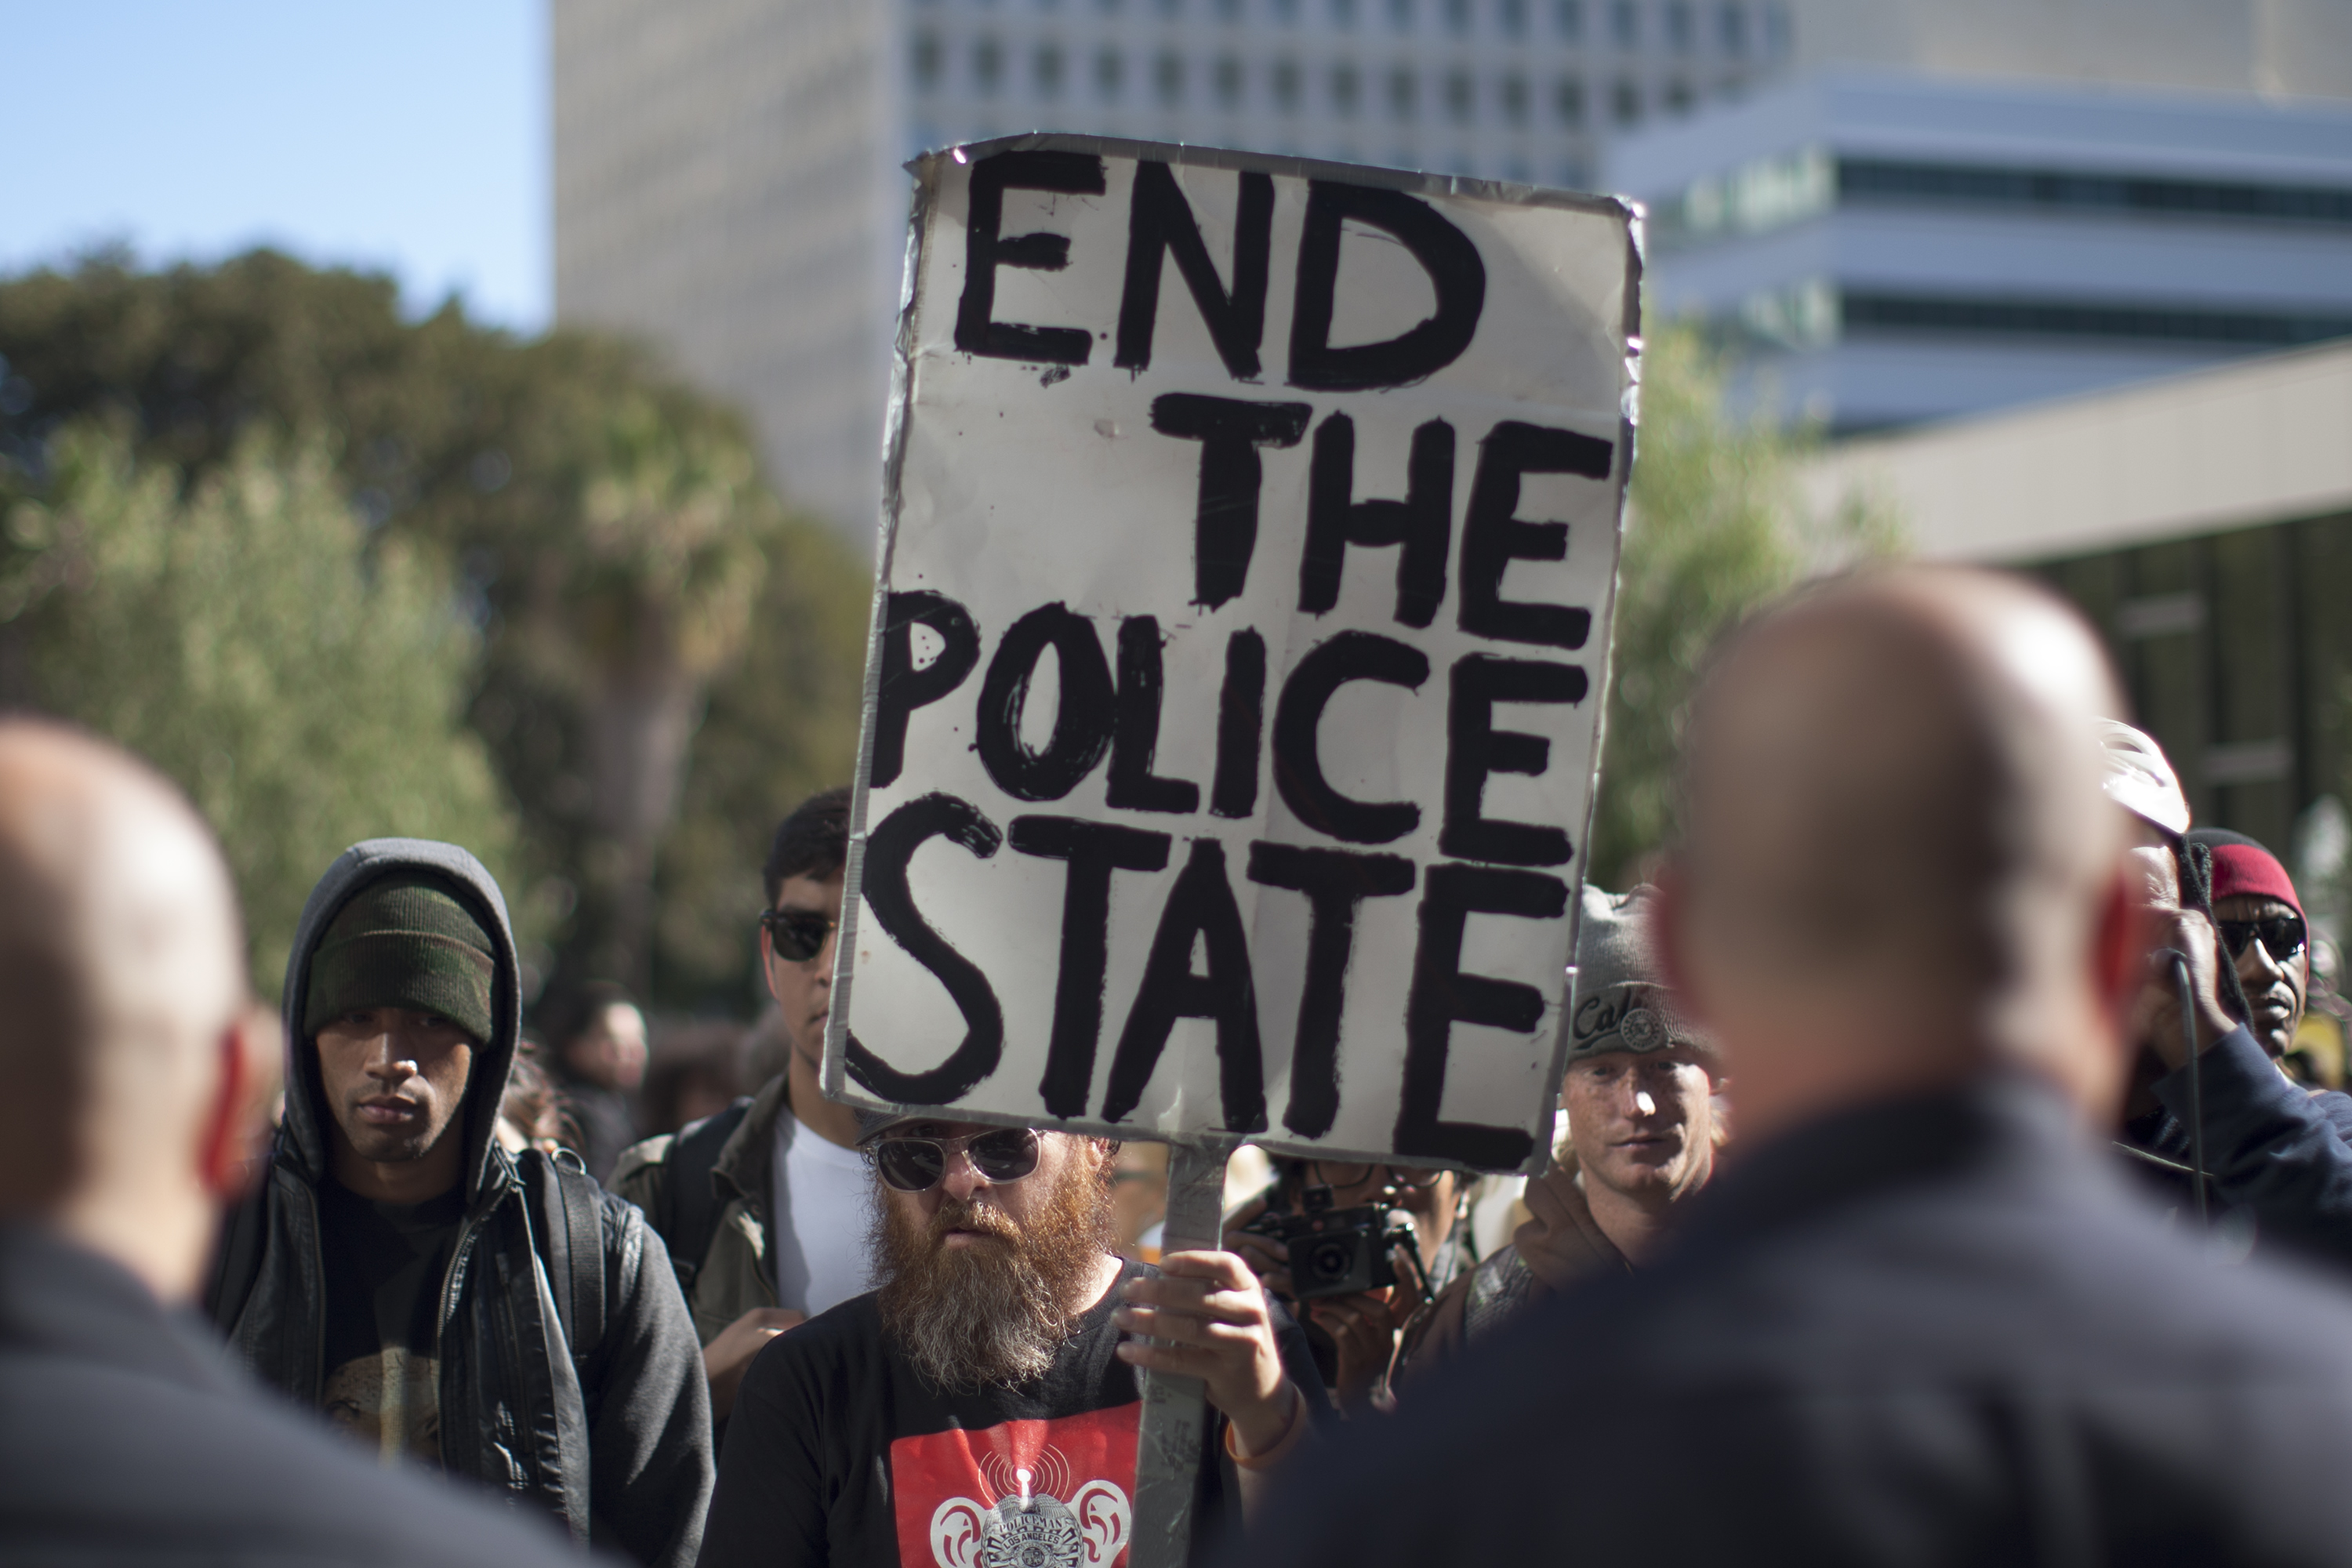 Protesters and police face off during a rally at Los Angeles Police Department Headquarters against the fatal police shooting of an unarmed homeless man on March 3, 2015. (Photo: David McNew/Getty Images)